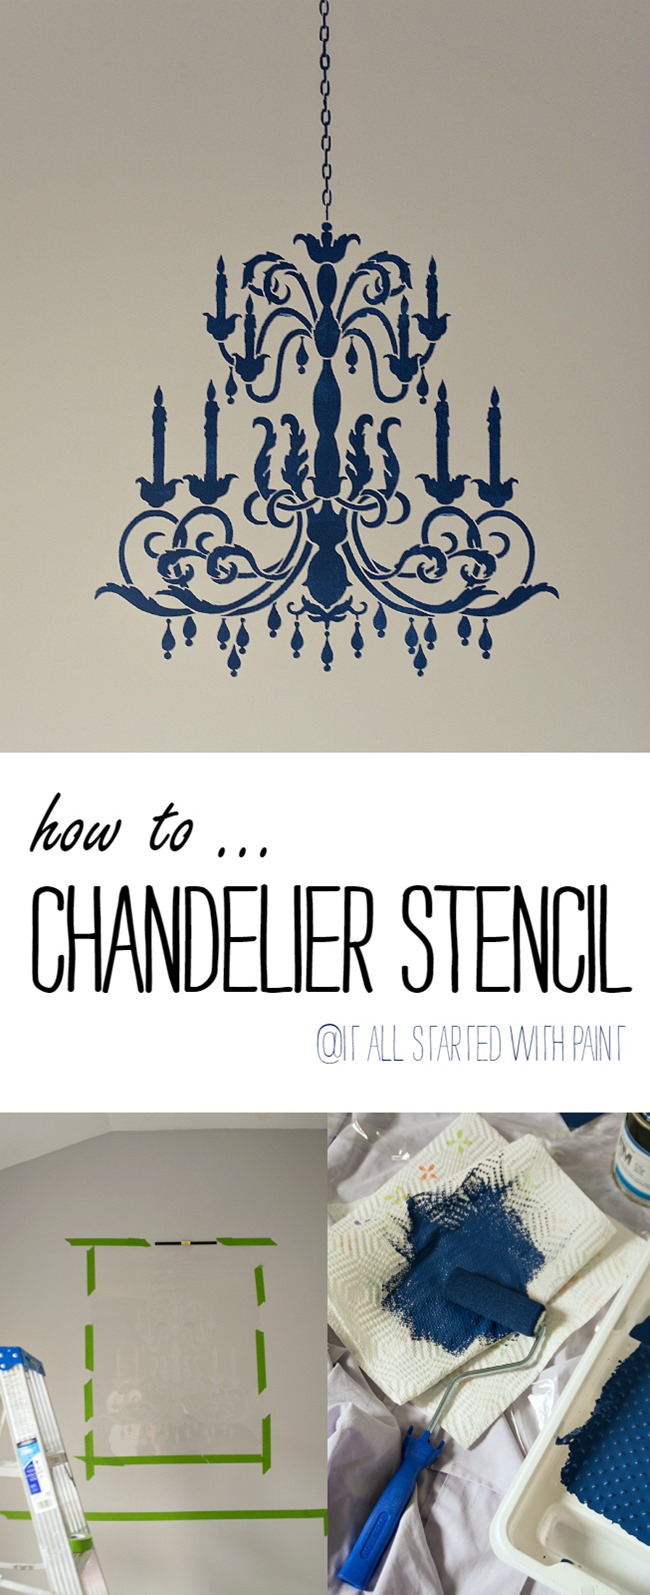 Chandelier Stencil Tutorial It All Started With Paint